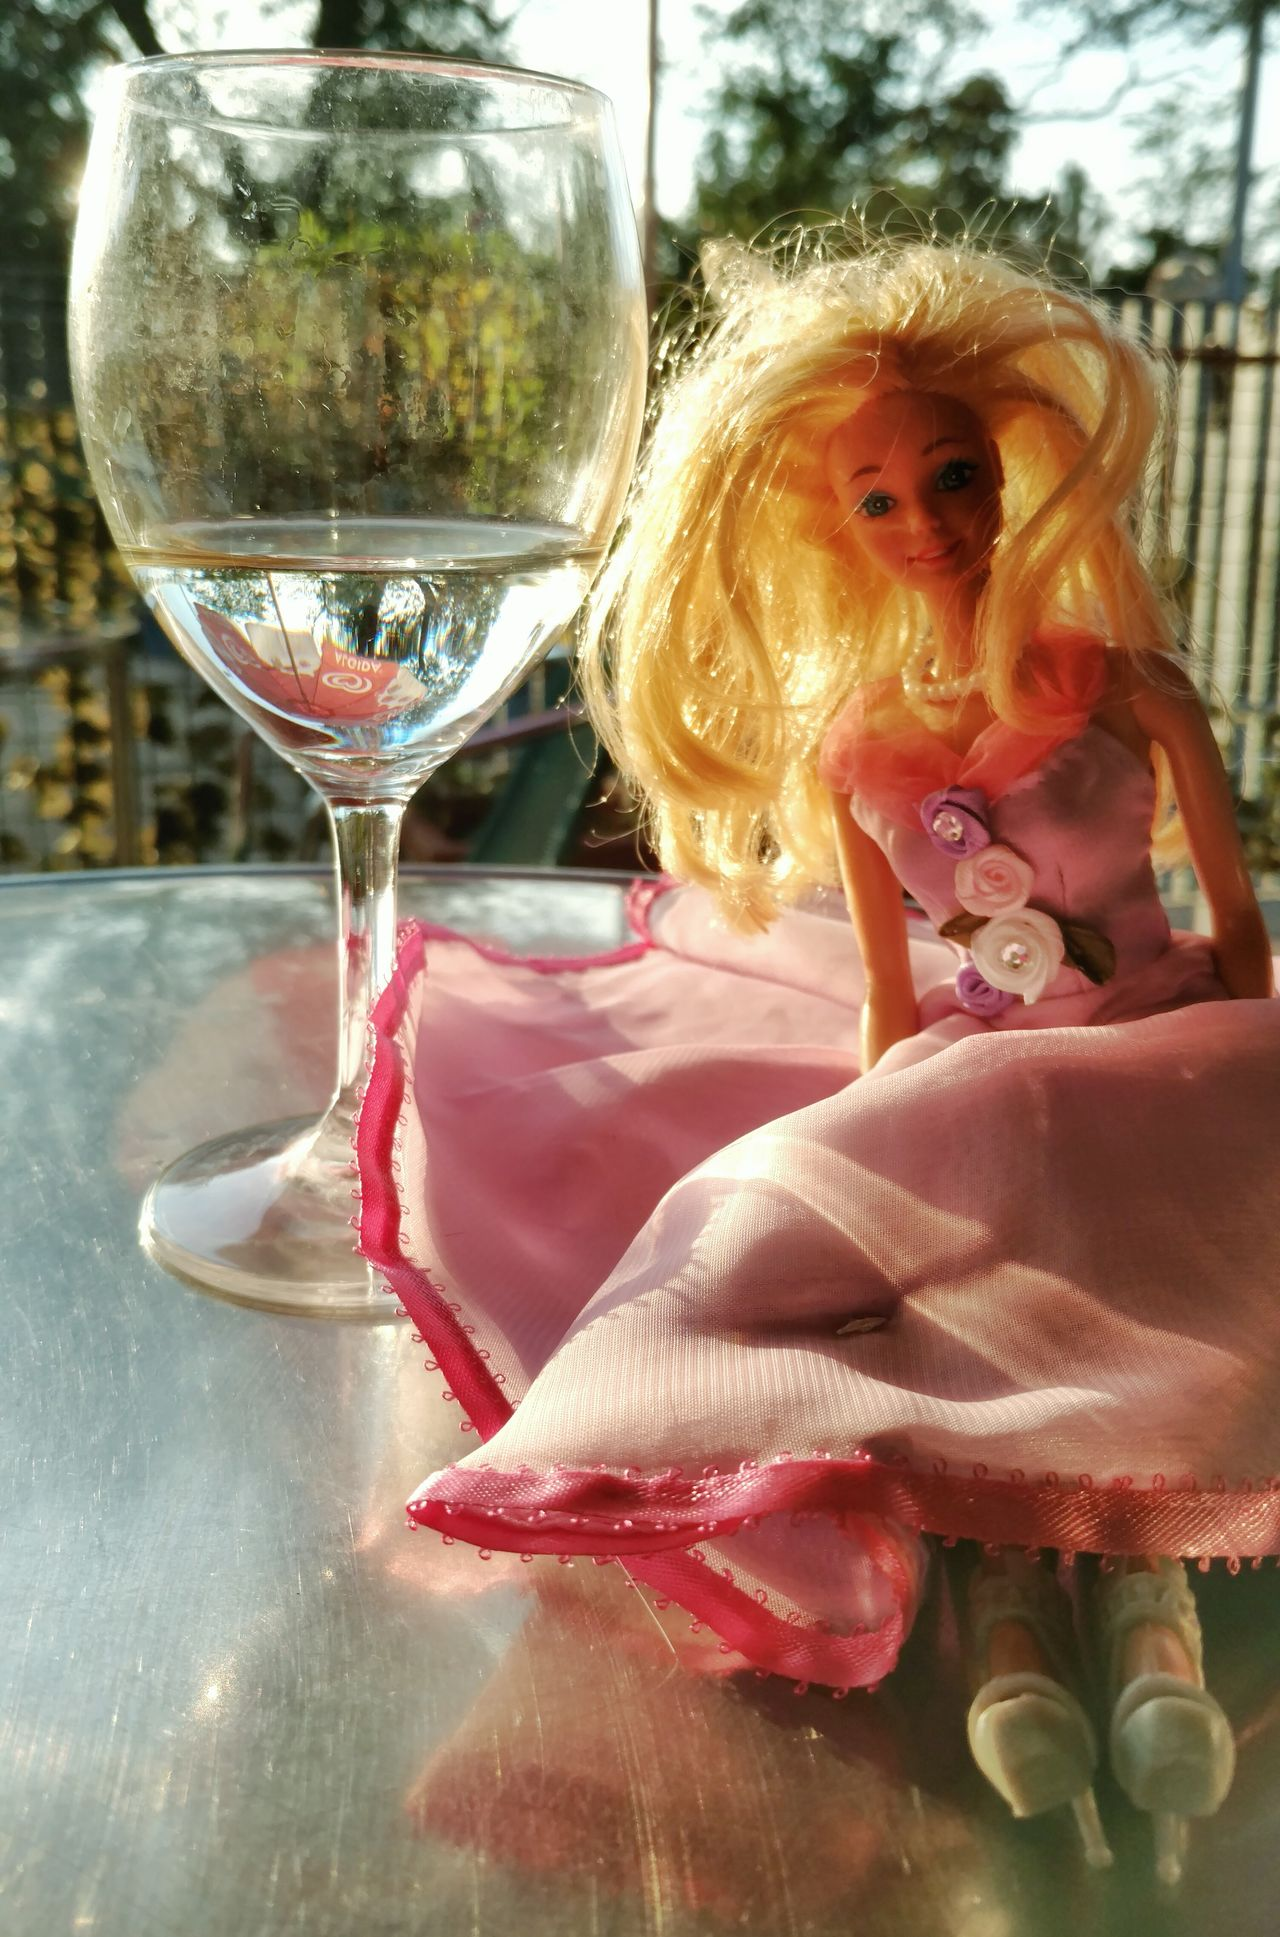 Barbie and wine spritz😊 Food And Drink Wineglass Drink Refreshment Wine Glass EyeEm Best Shots EyeEm Best Edits Motorola Mobile Photography Story Behind The Picture EyeEm Gallery Snapseed Barbie World Barbie Beauty Fashion Sunset Colors Storytelling